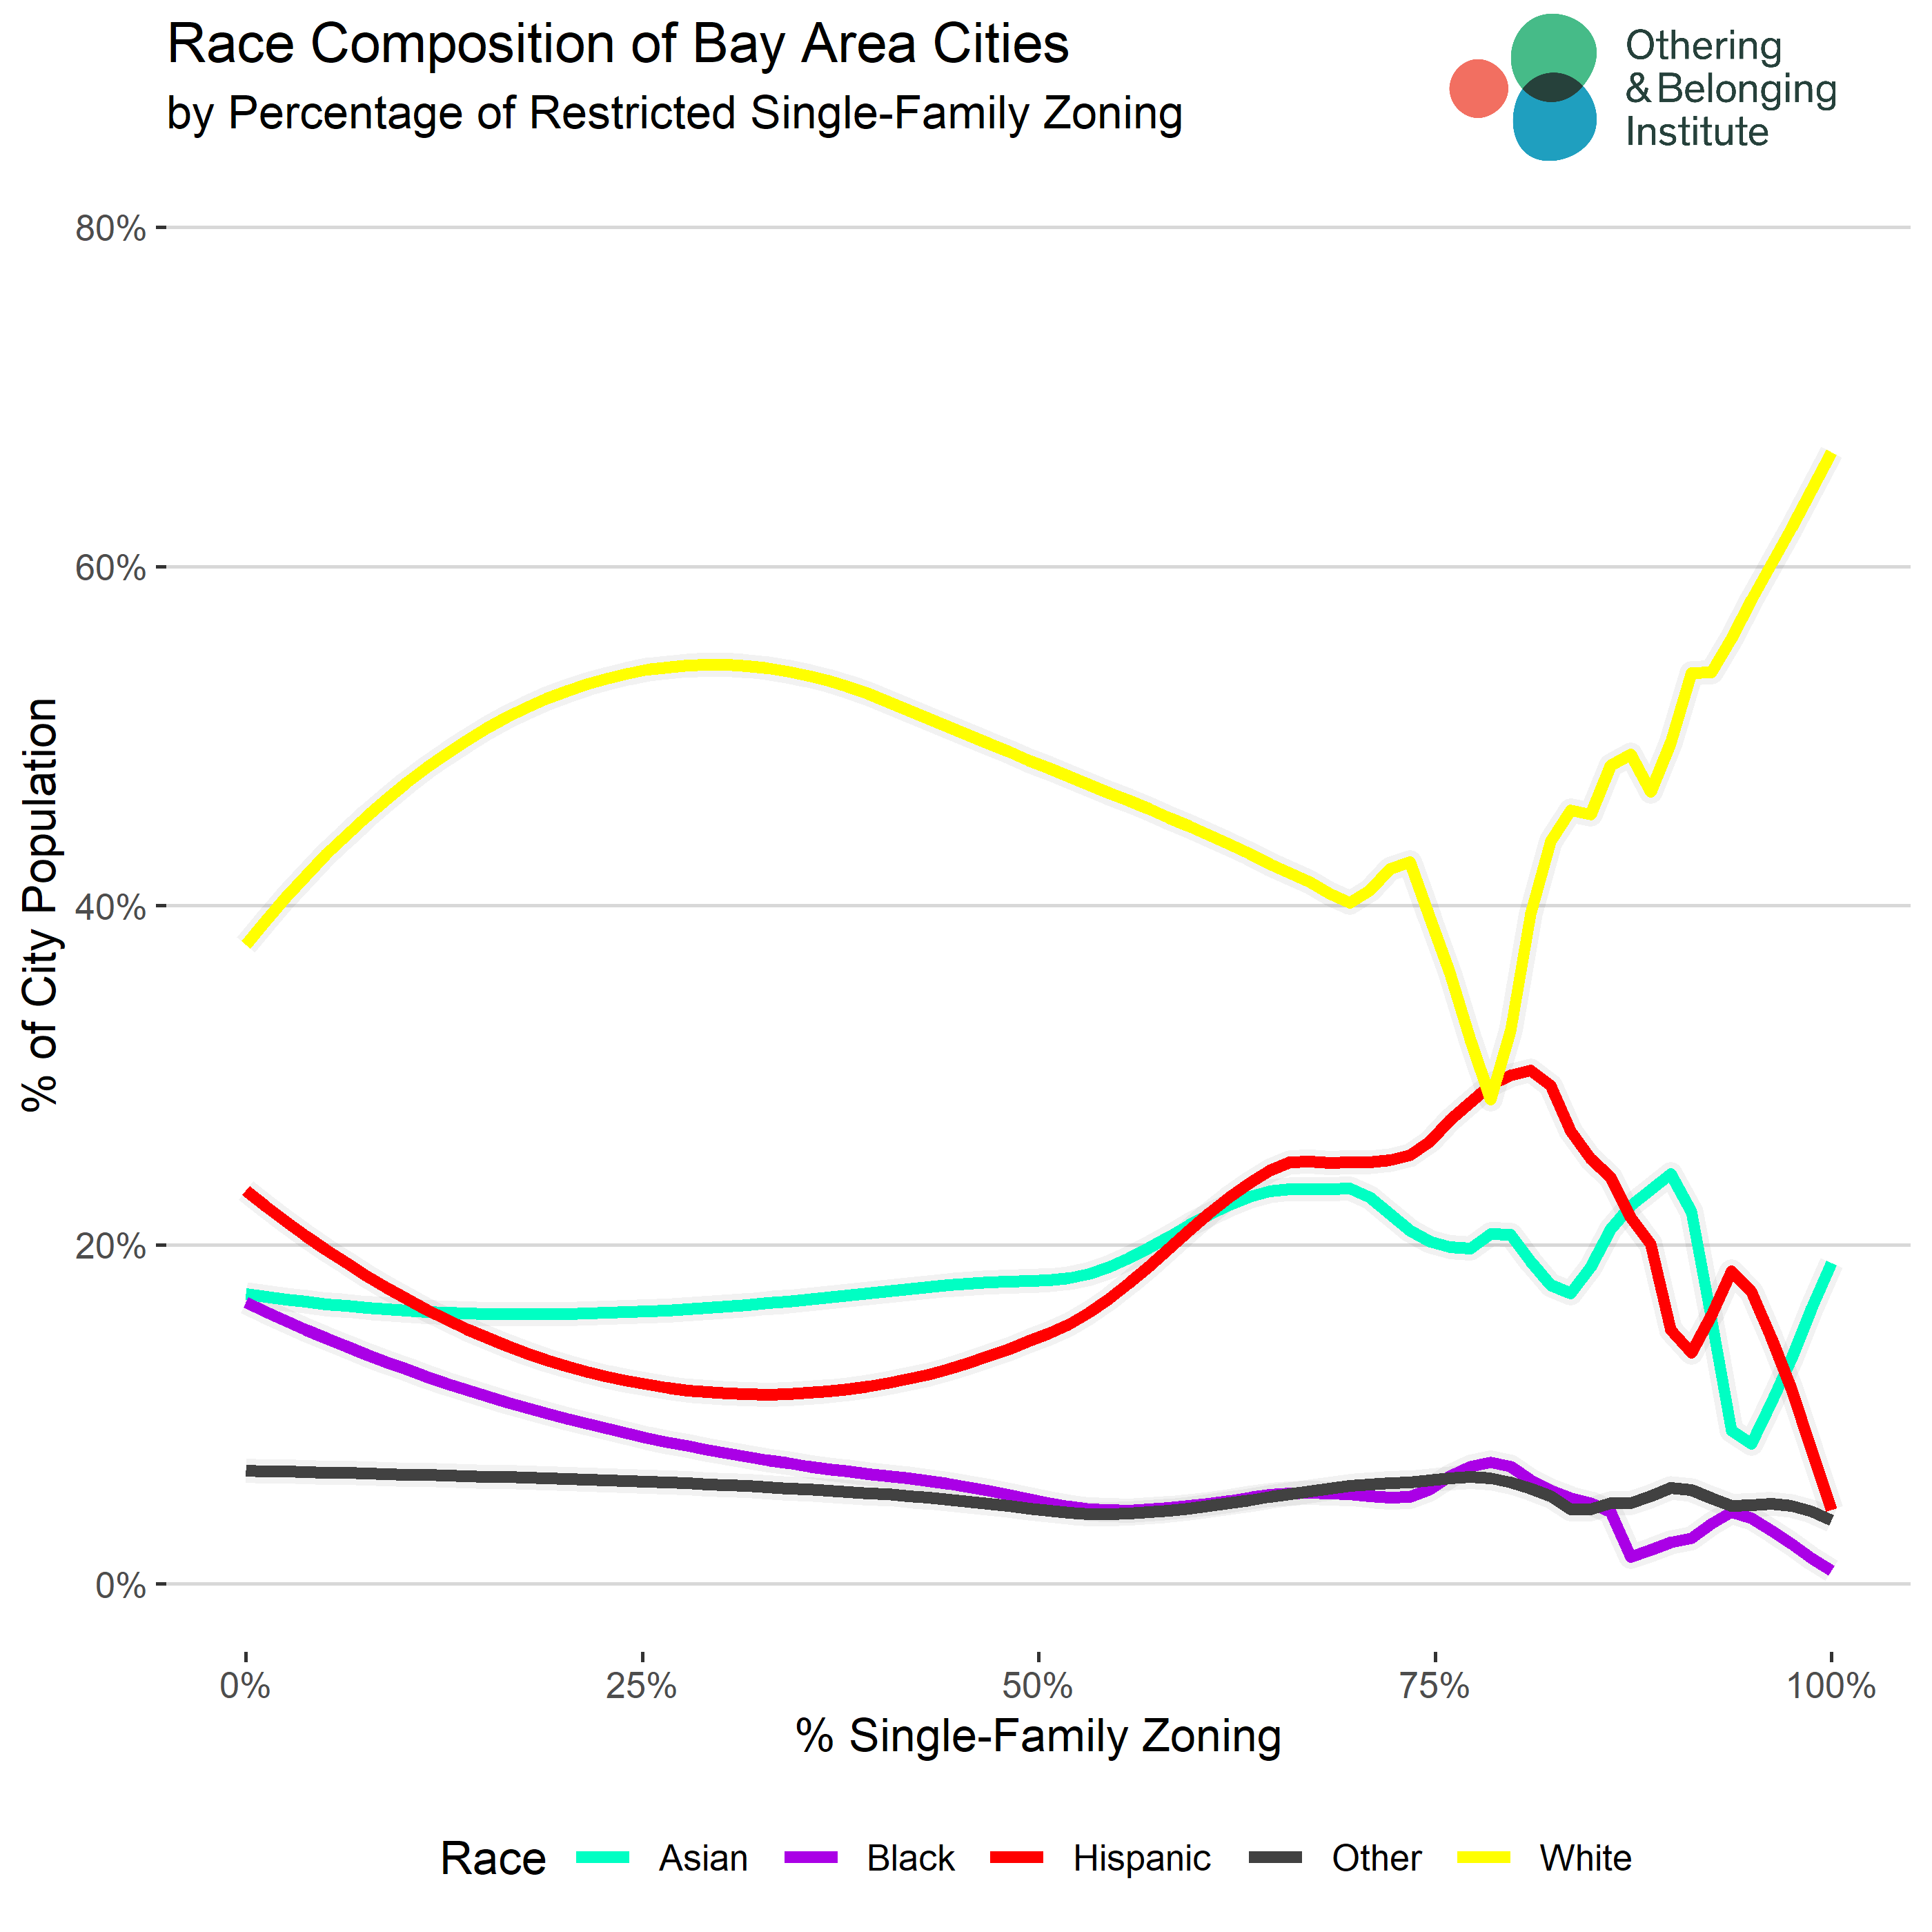 Racial composition and single family zoning.